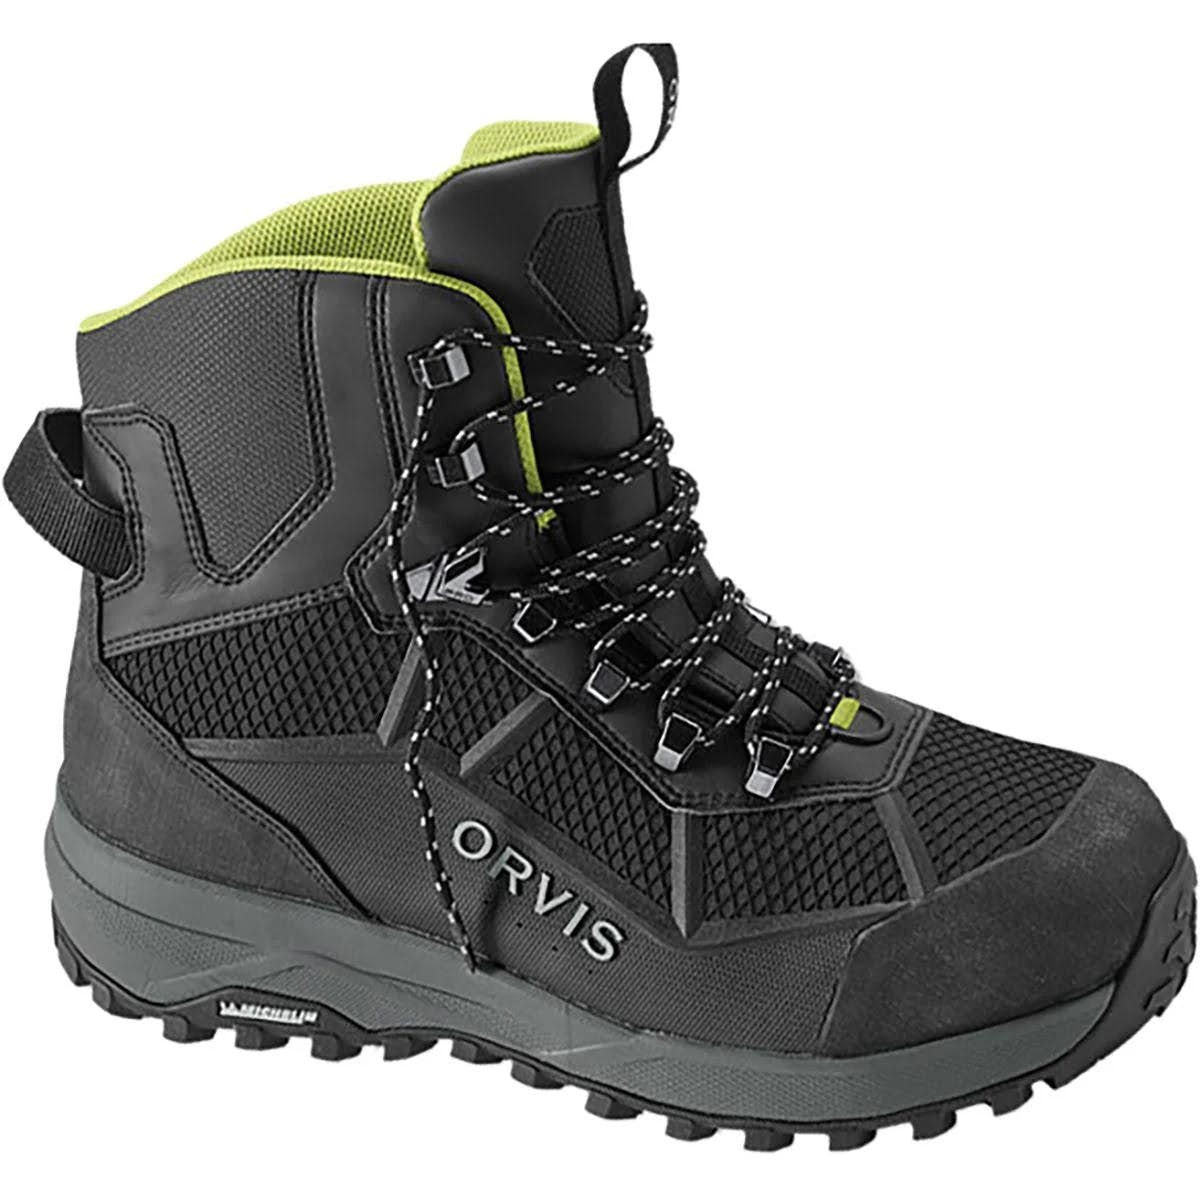 Orvis Pro Wading Boot, 14